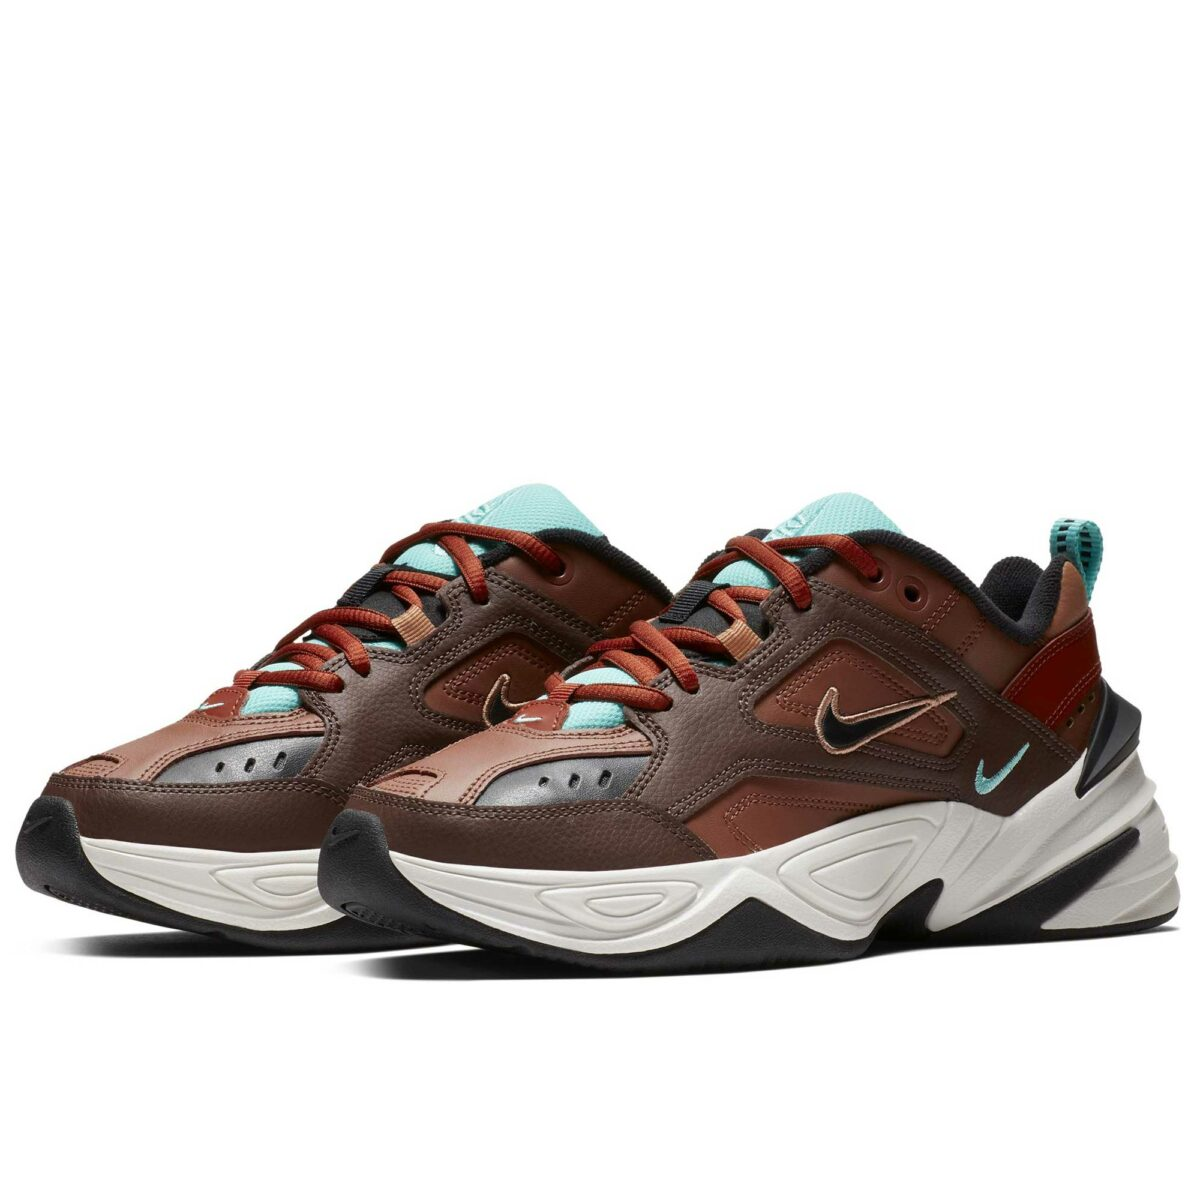 nike m2k tekno brown ao3108_200 купить